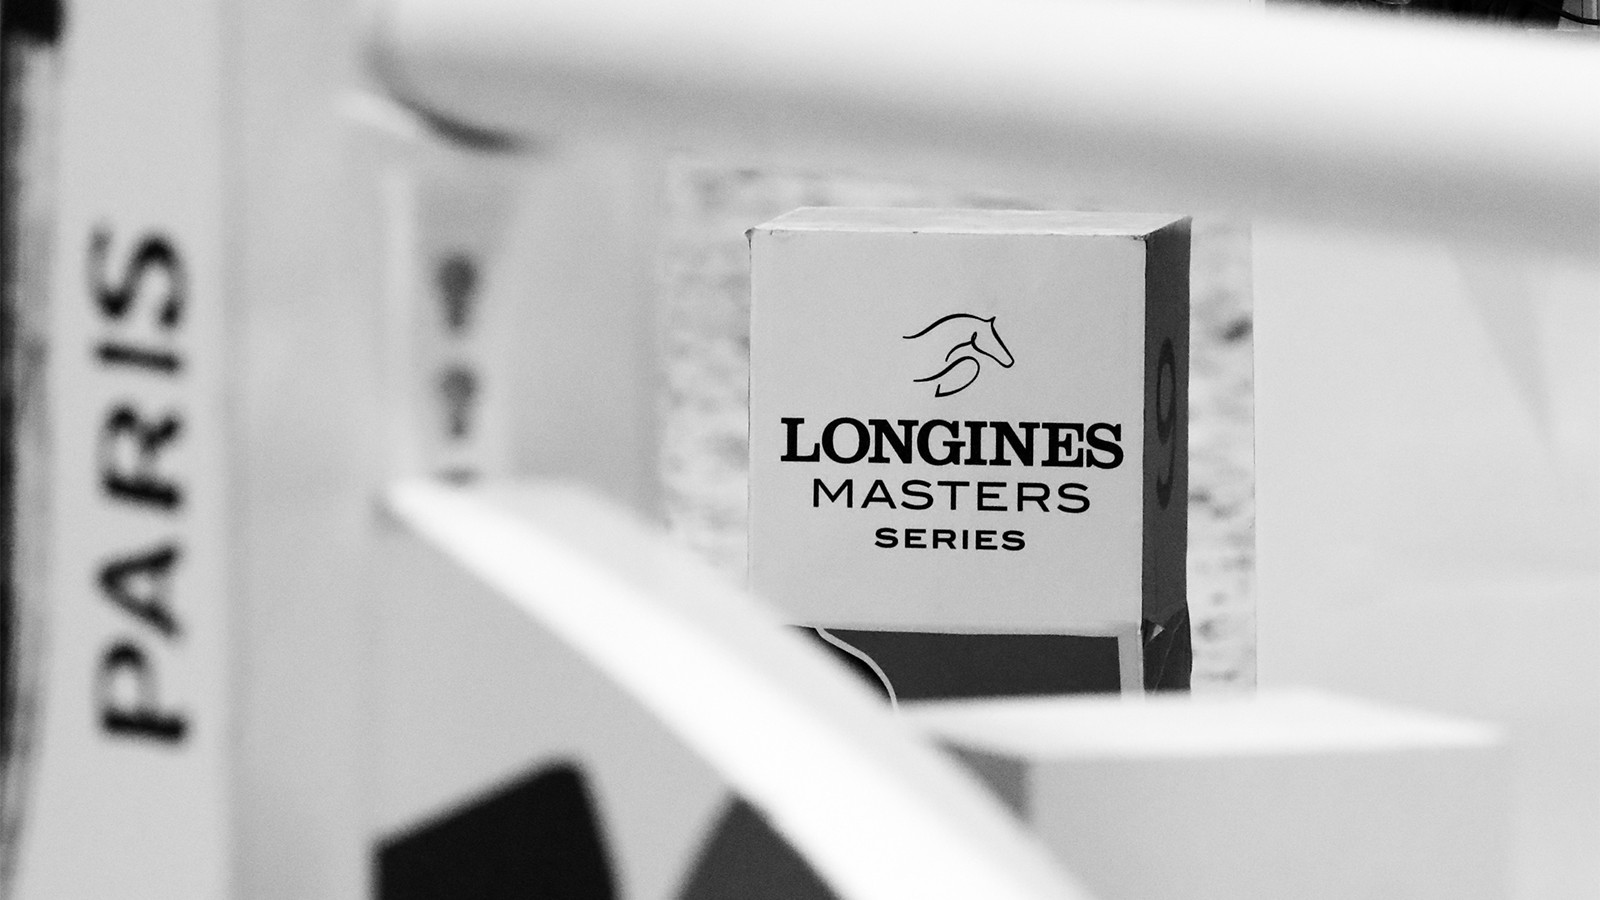 www.lacavalieremasquee.com | The partnership between EEM and Longines comes to an end